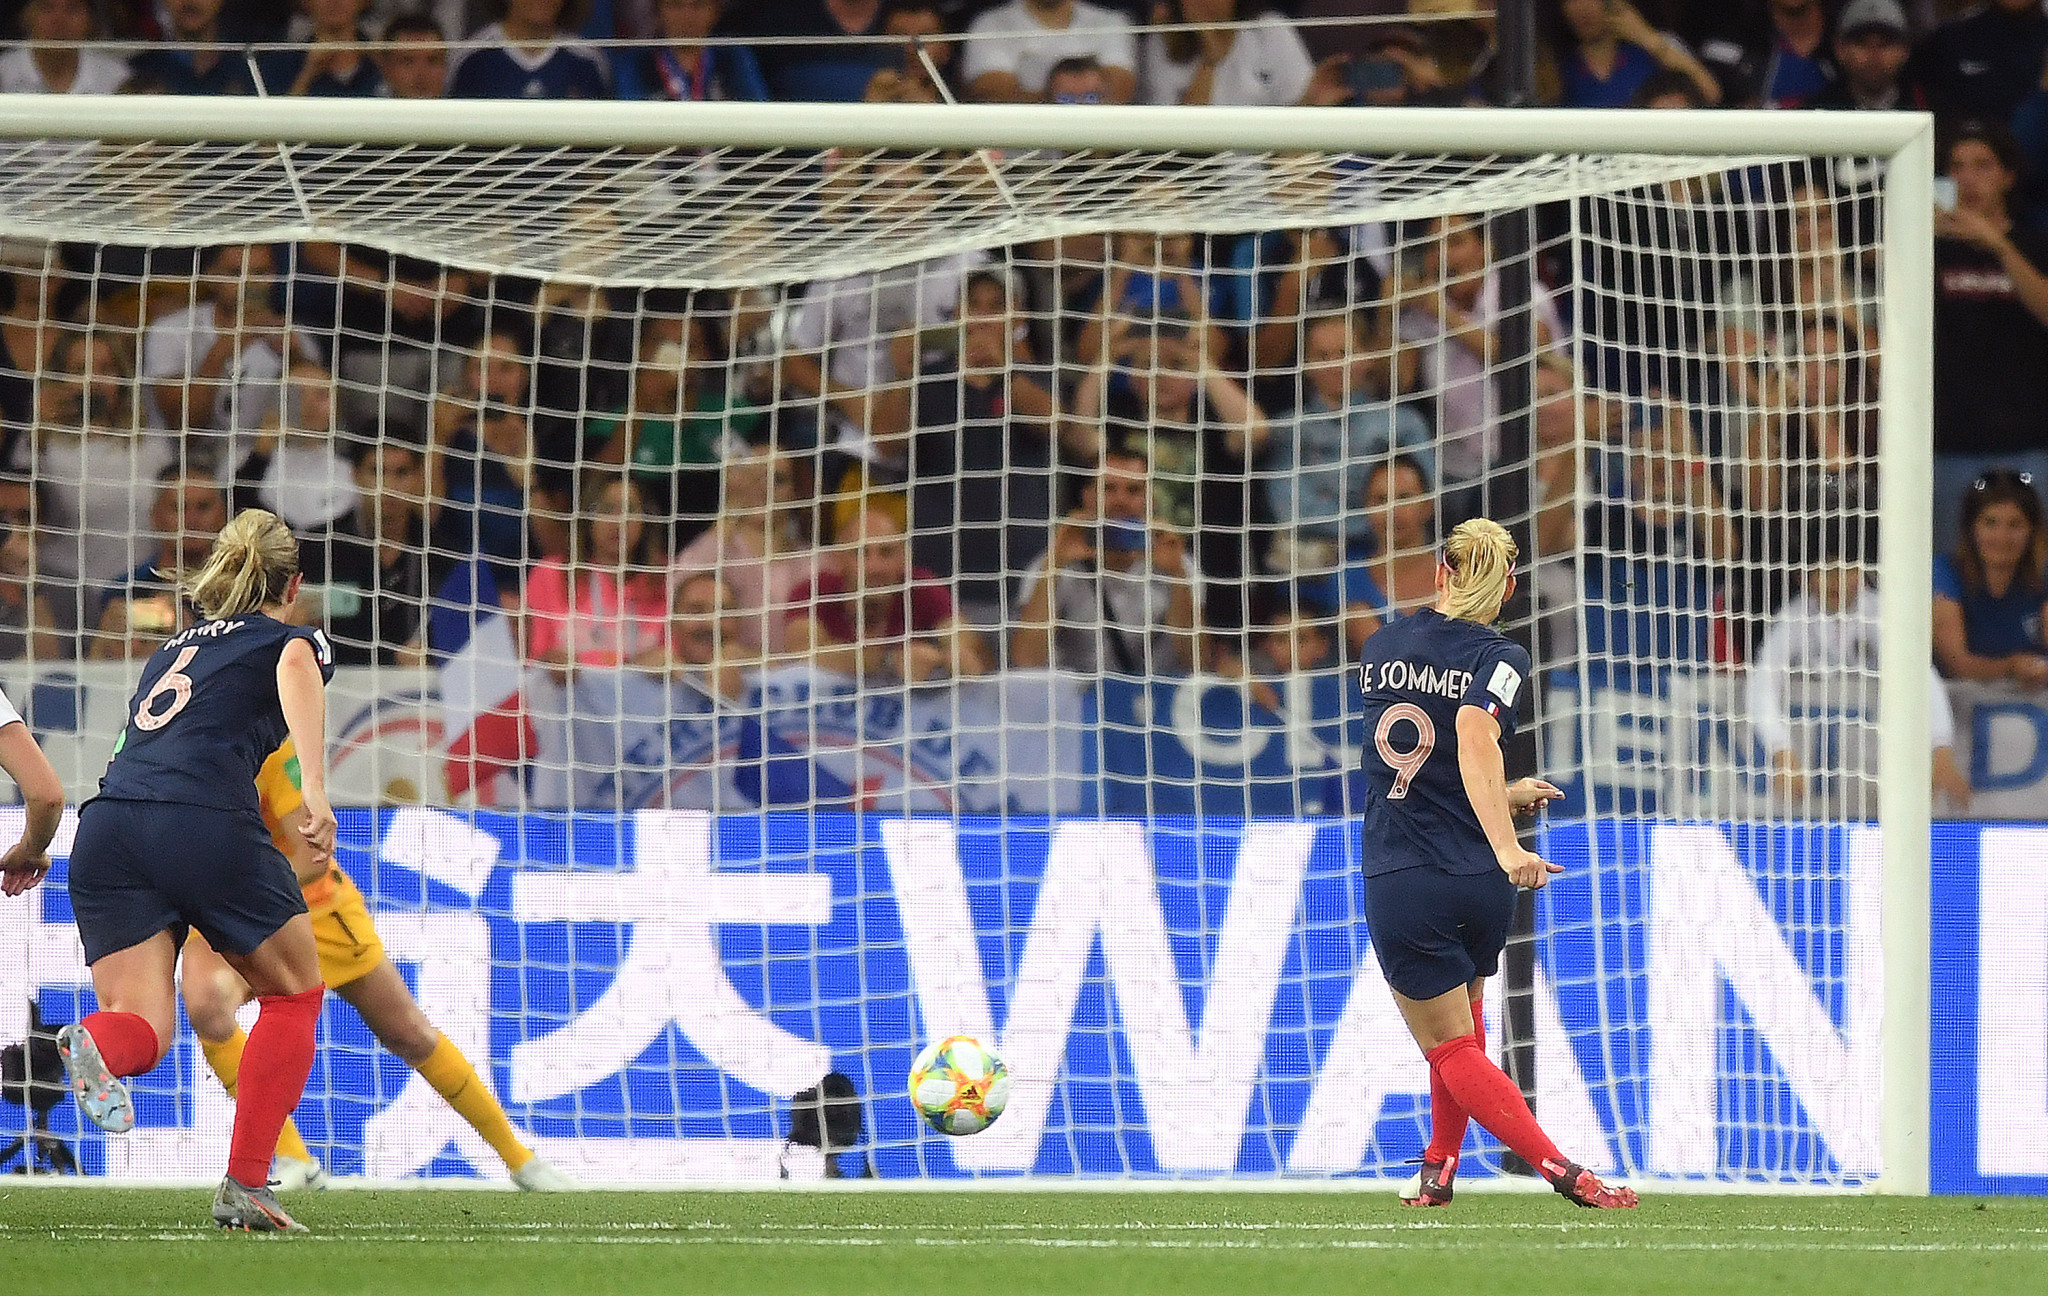 Eugénie Le Sommer scored a penalty to give France a 2-1 victory ©Getty Images